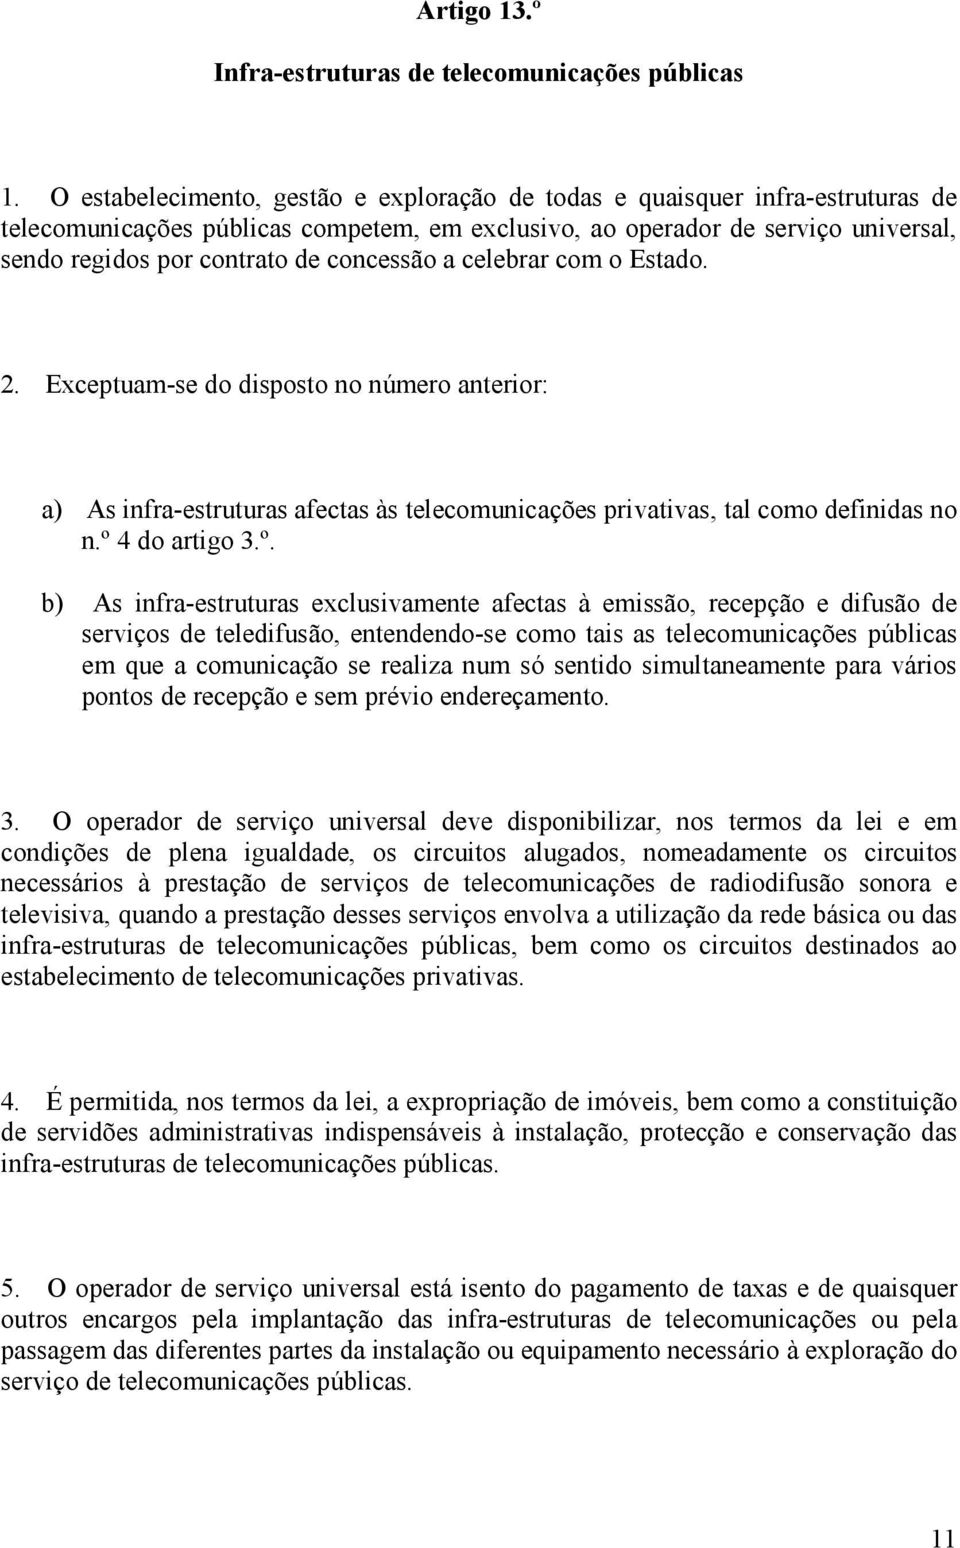 concessão a celebrar com o Estado. 2. Exceptuam-se do disposto no número anterior: a) As infra-estruturas afectas às telecomunicações privativas, tal como definidas no n.º